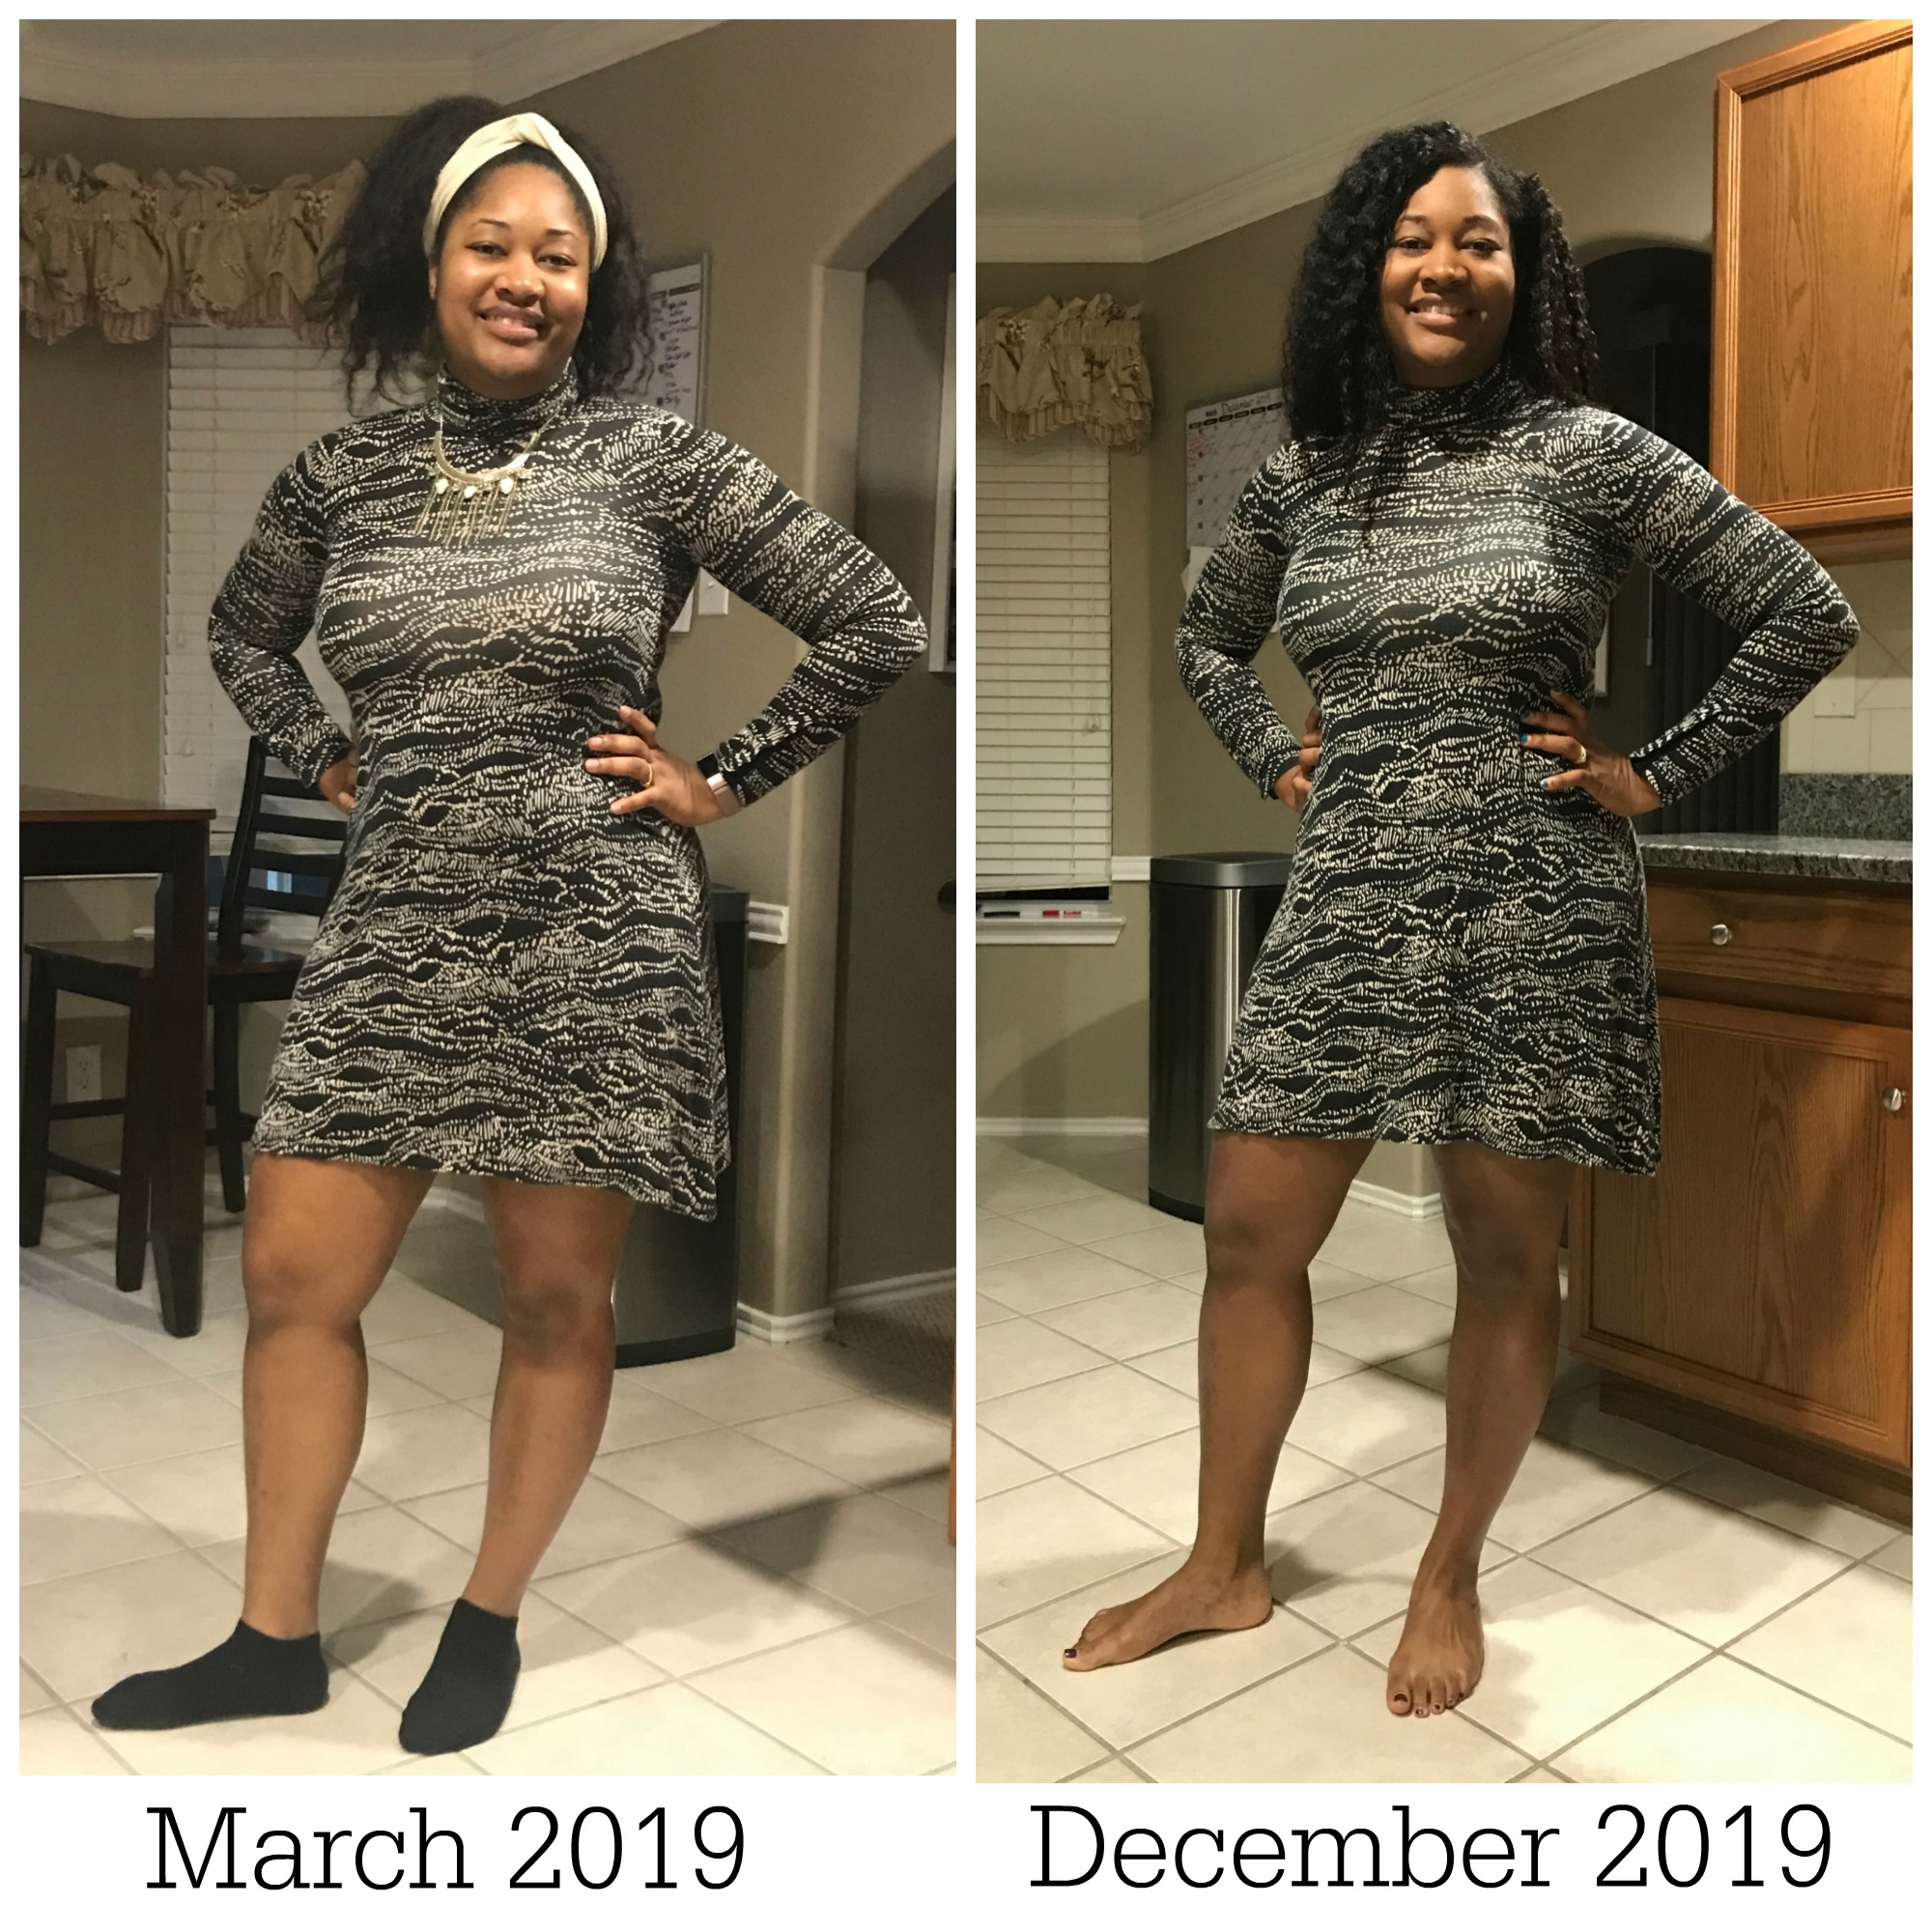 March 2019 vs. December 2019 weight loss journey